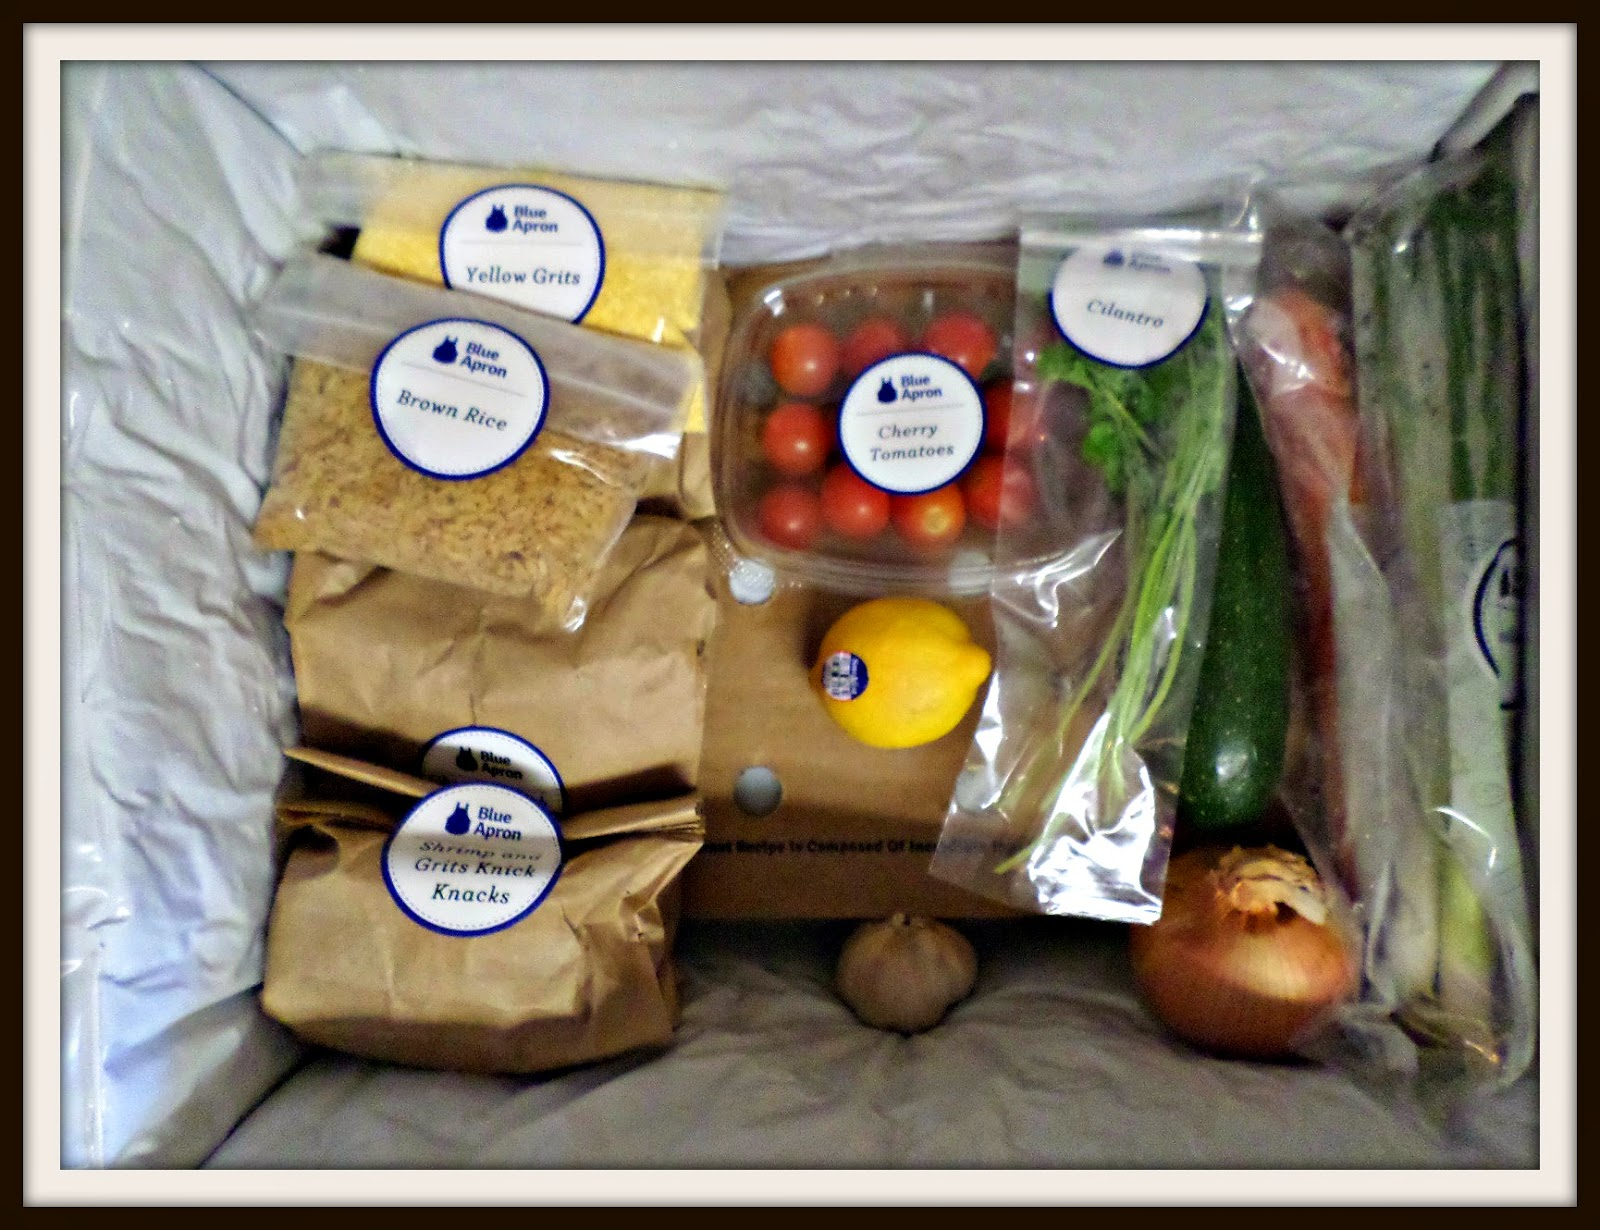 Blue apron yellow grits - Blue Apron Always Sends You All Of The Fresh Ingredients Meat Seafood Condiments And Recipes That You Need To Make The Dishes